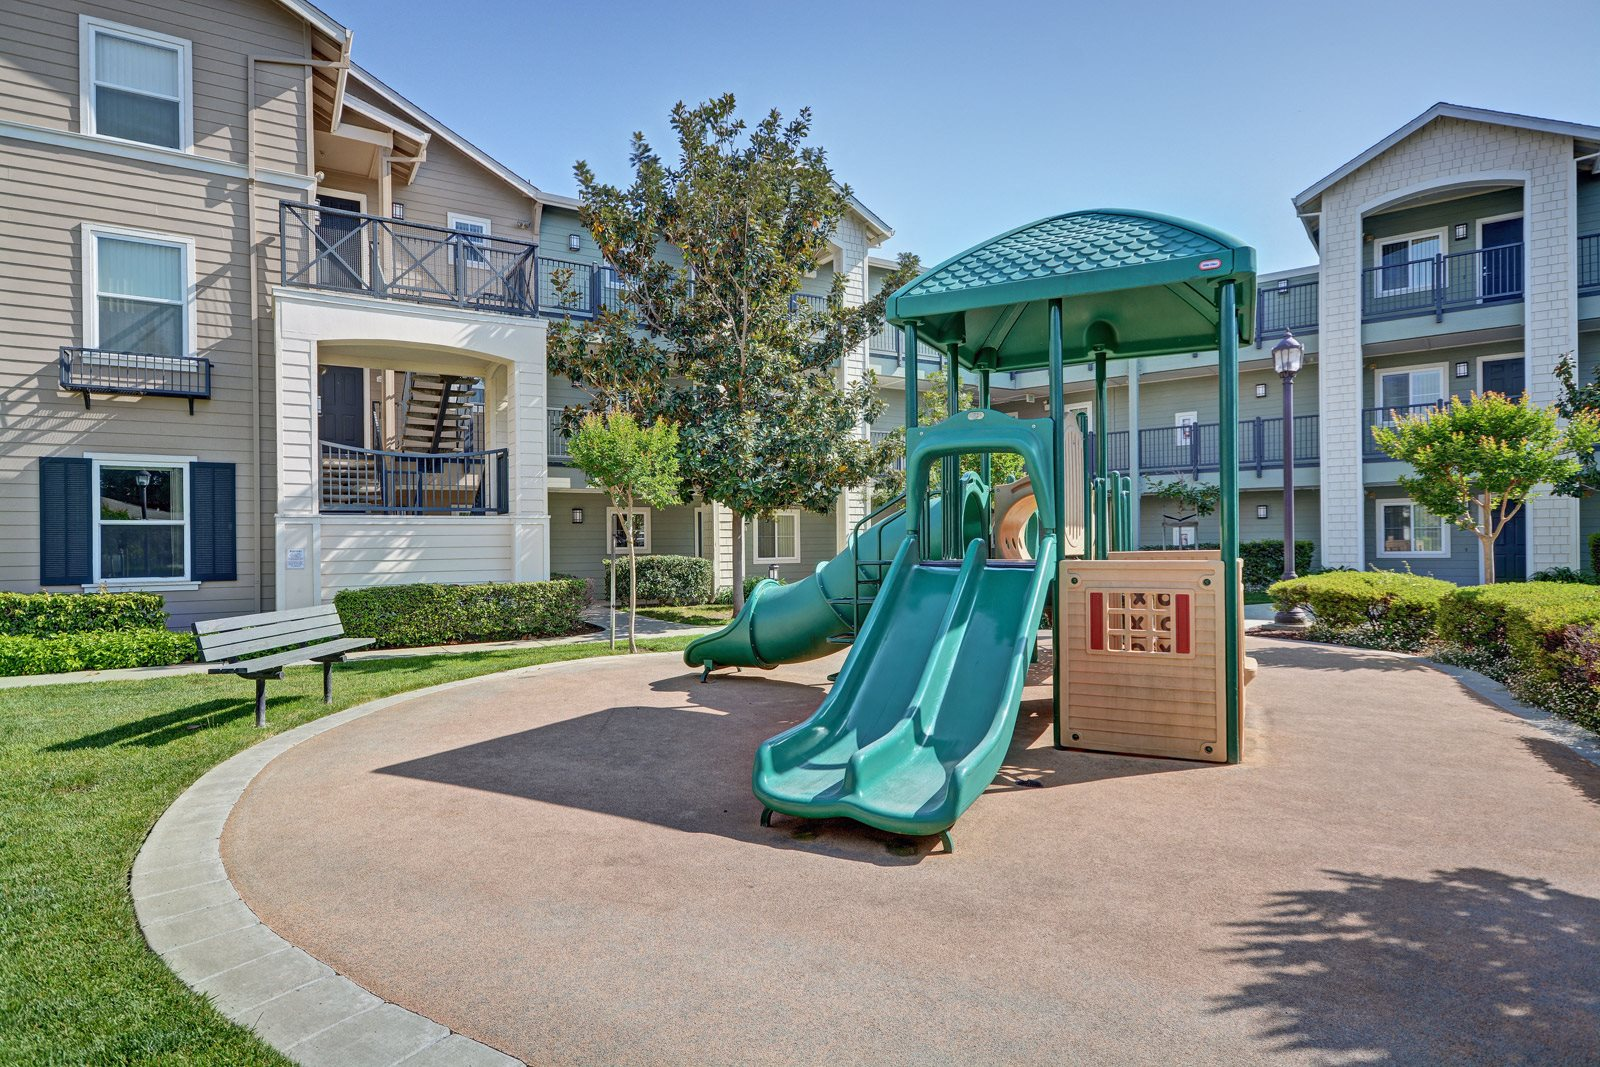 Children's Playground at The Kensington, 94566, CA